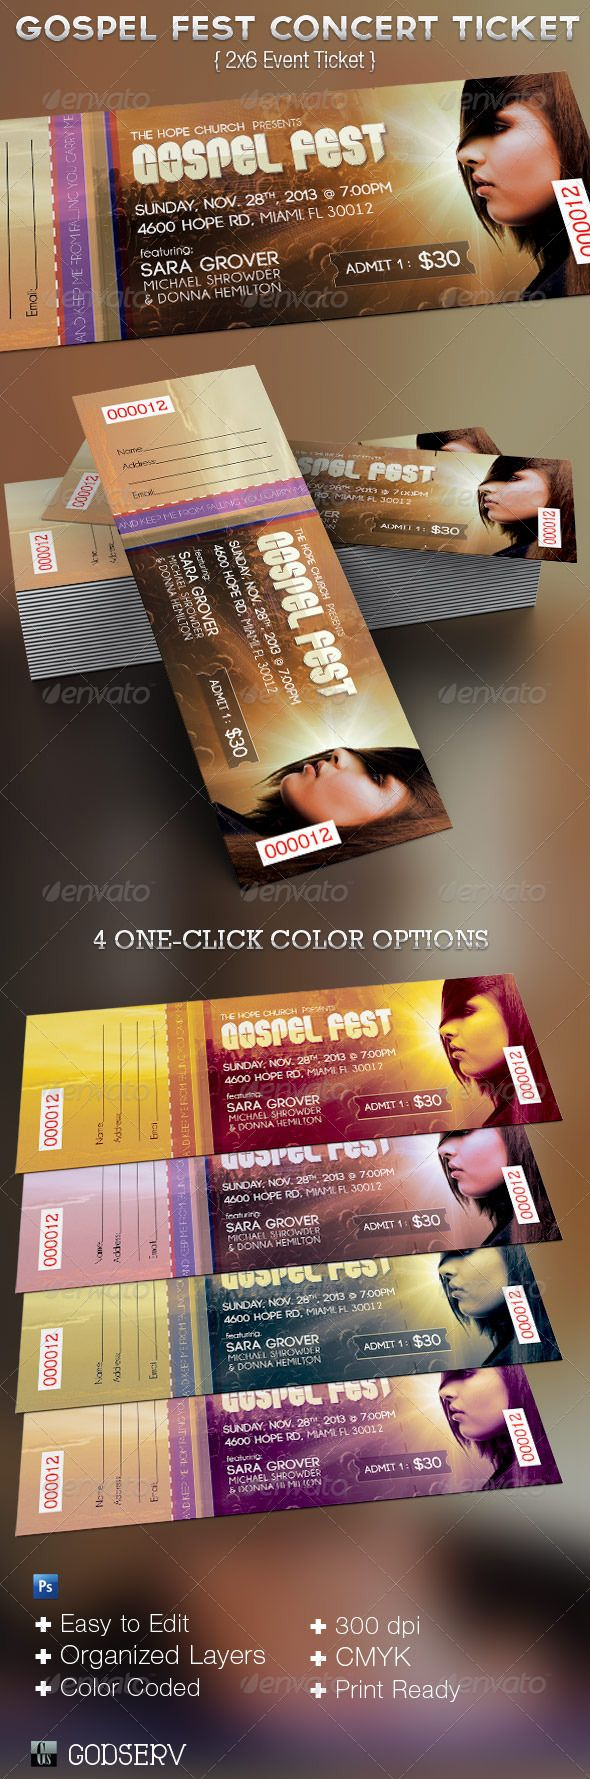 Concert Ticket Template Free Download Delectable 14 Best Layoutstext And Images Images On Pinterest  Brochures .